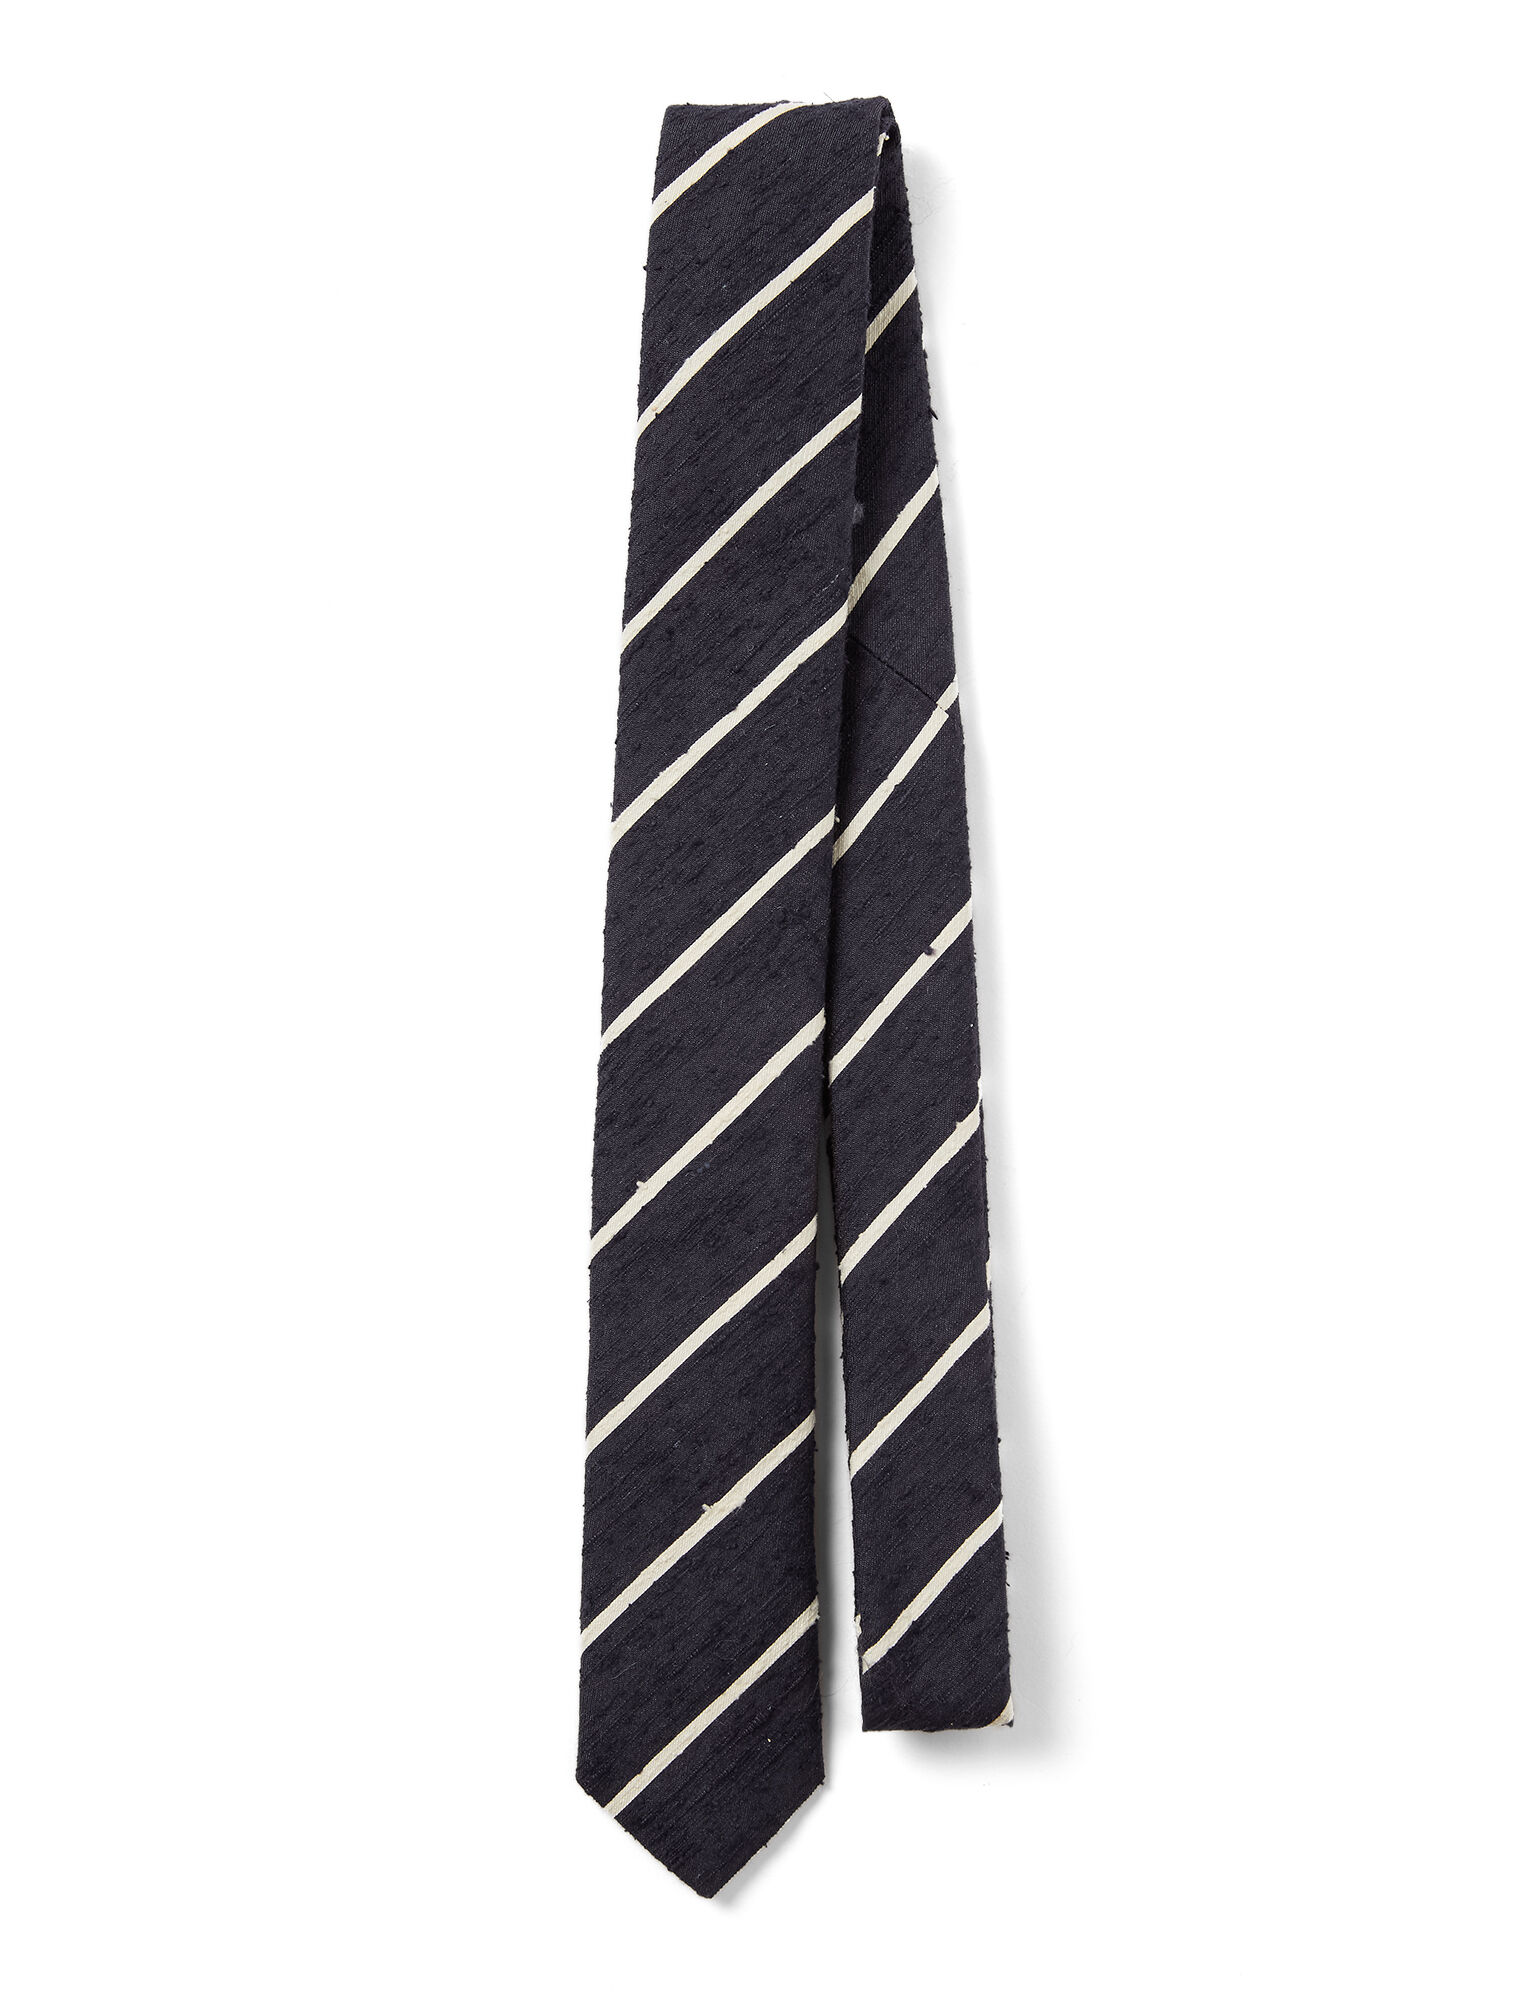 Joseph, Silk Stripes Tie, in NAVY/ECRU